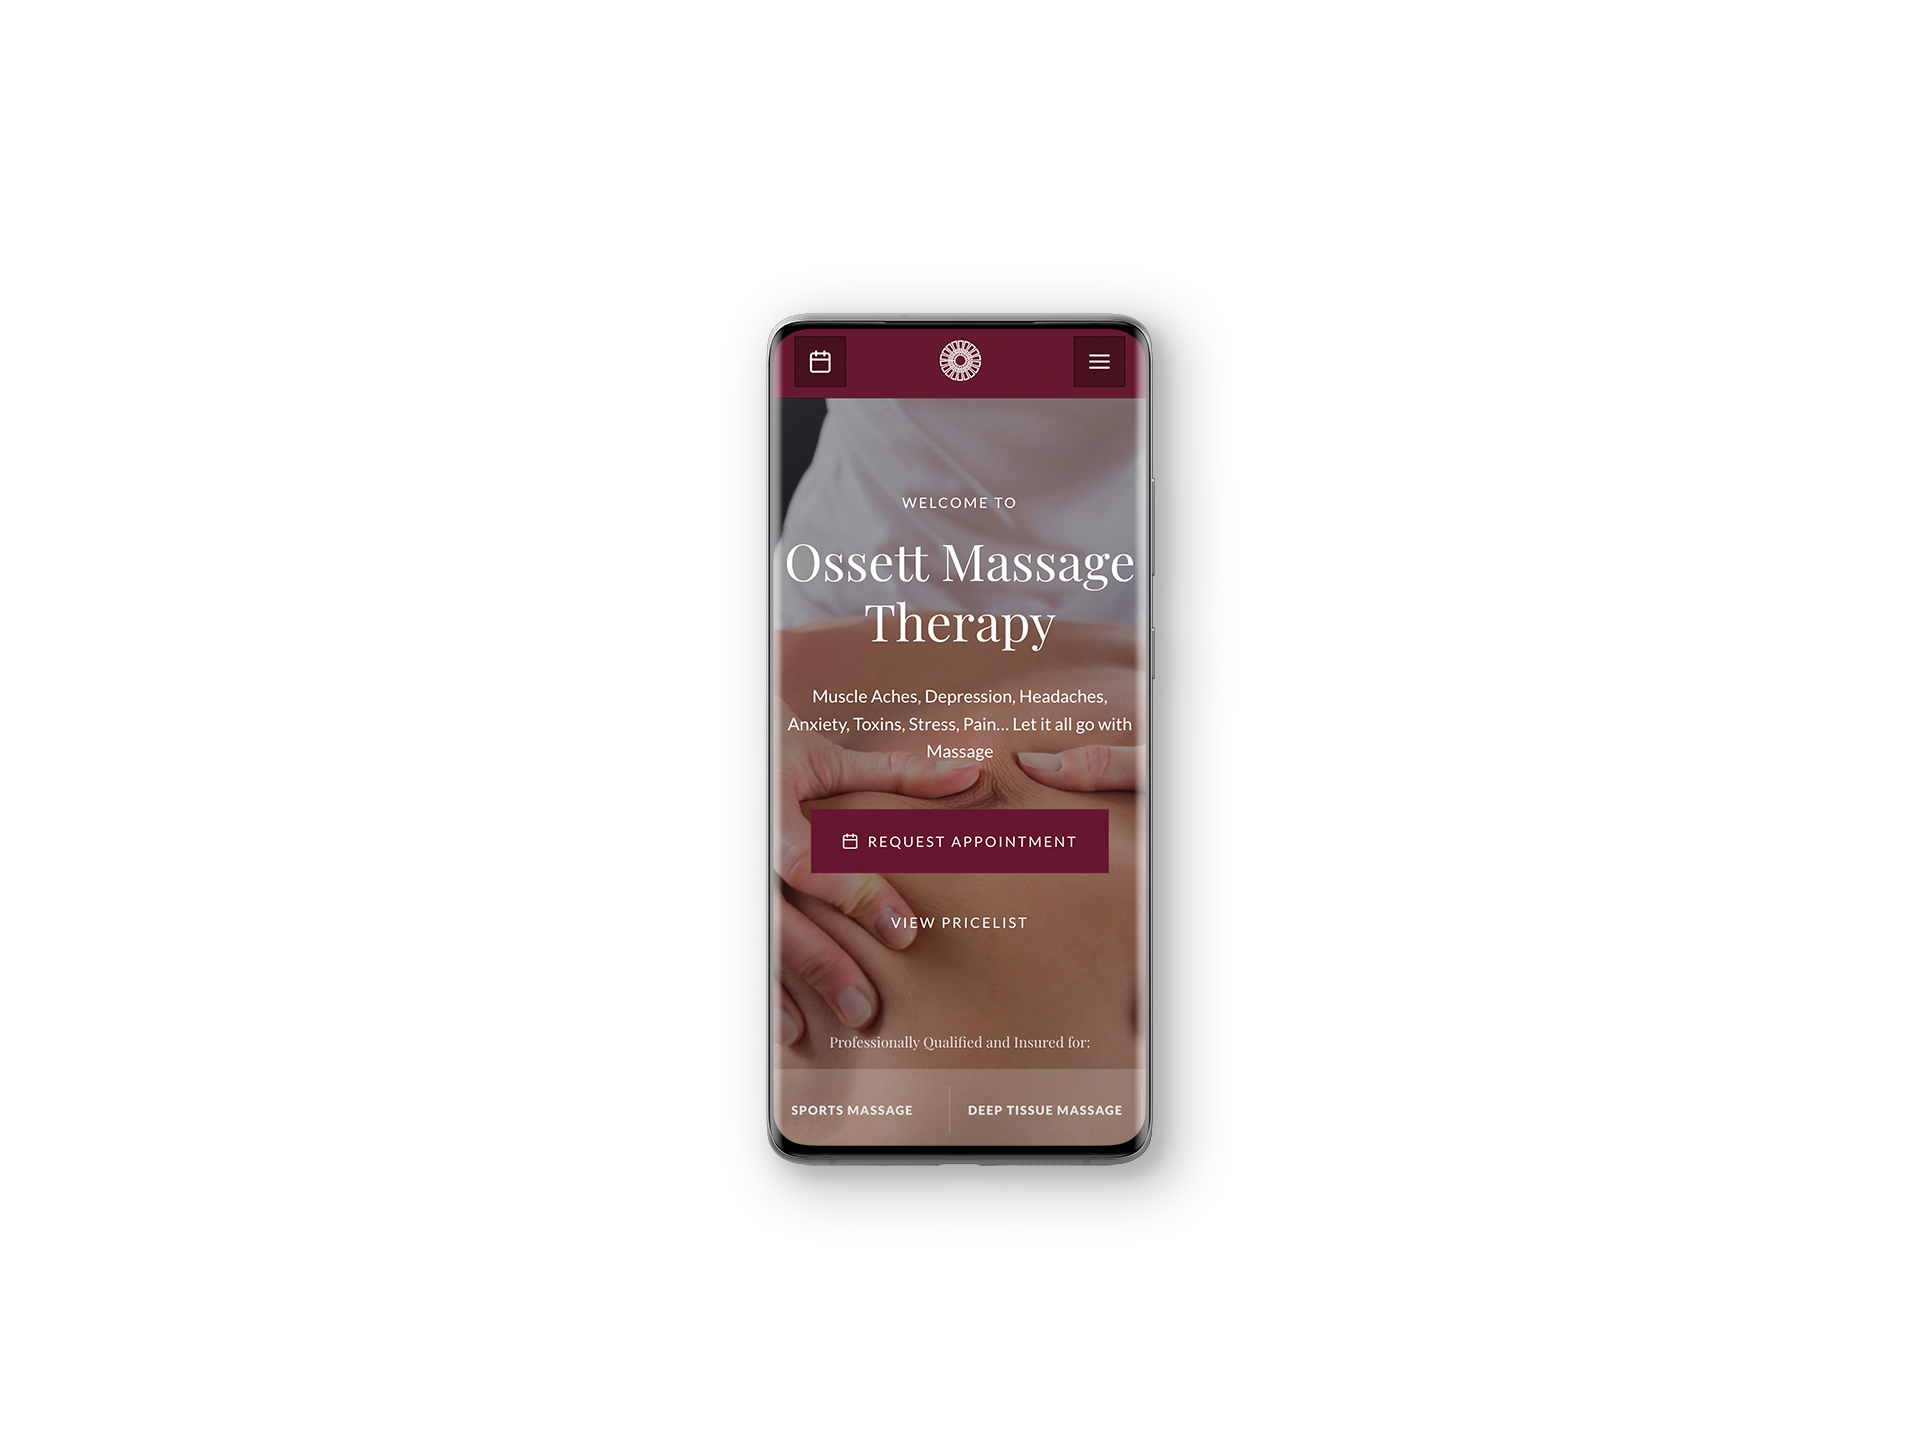 Ossett Massage Therapy Website Development - Mobile Repsonsive